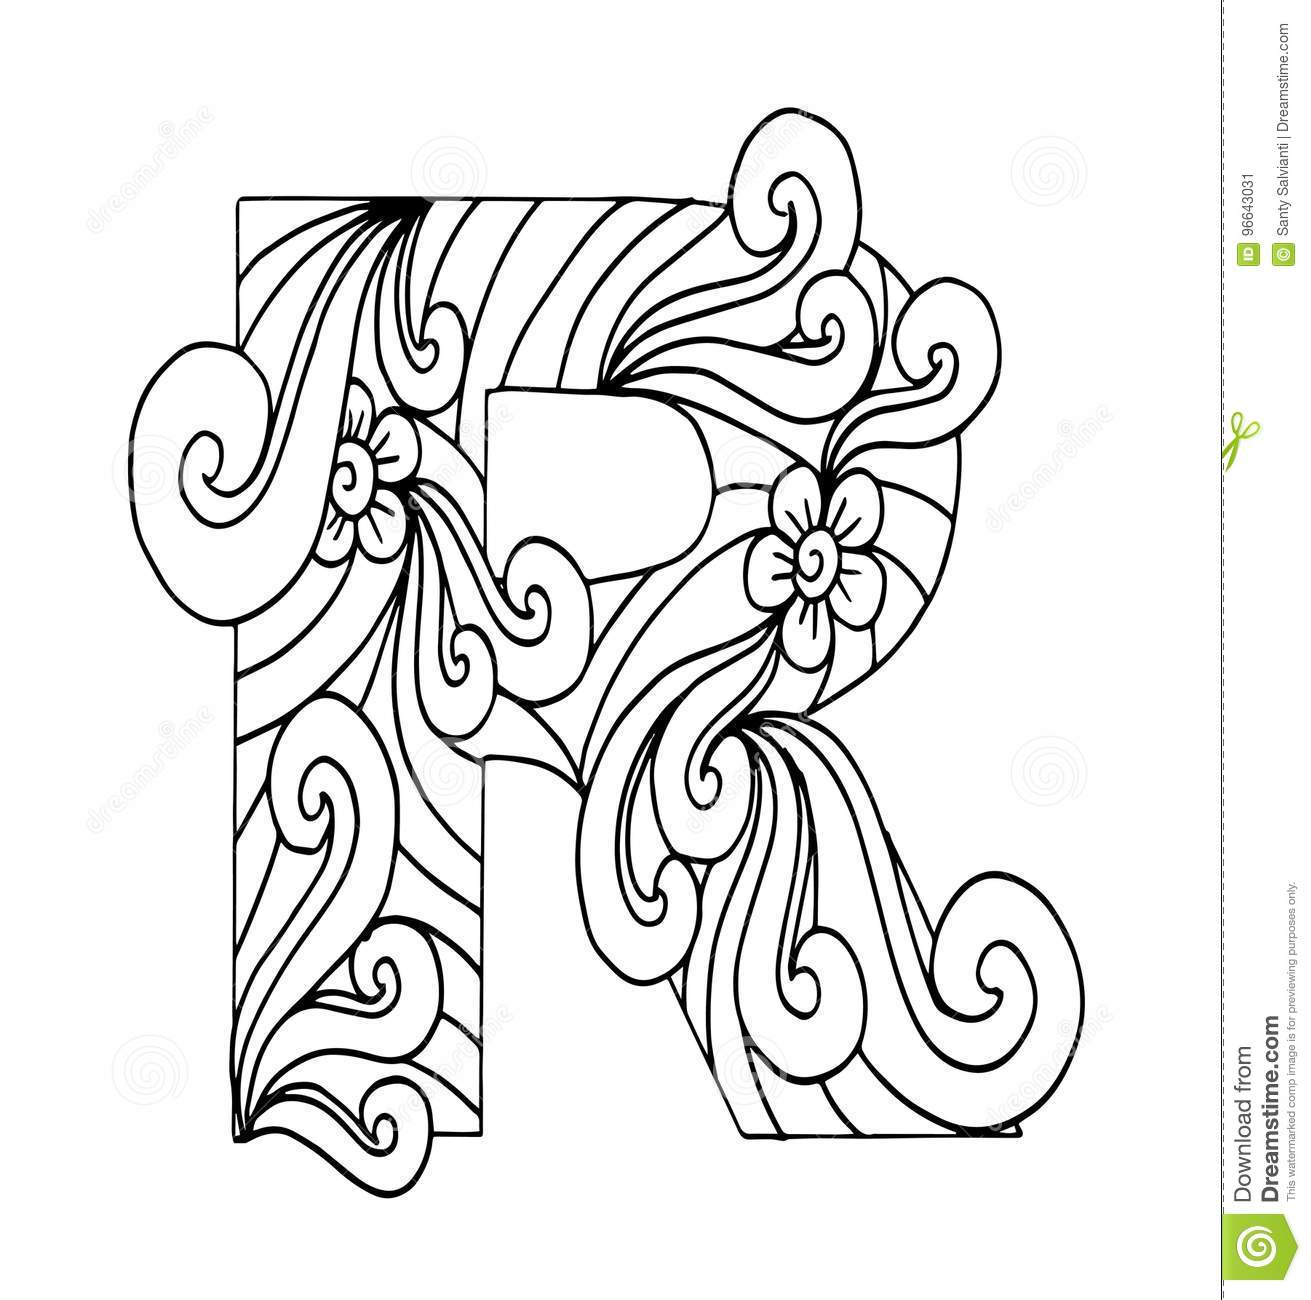 Royalty Free Stock Photo Download Zentangle Stylized Alphabet Letter R In Doodle Style Illustration